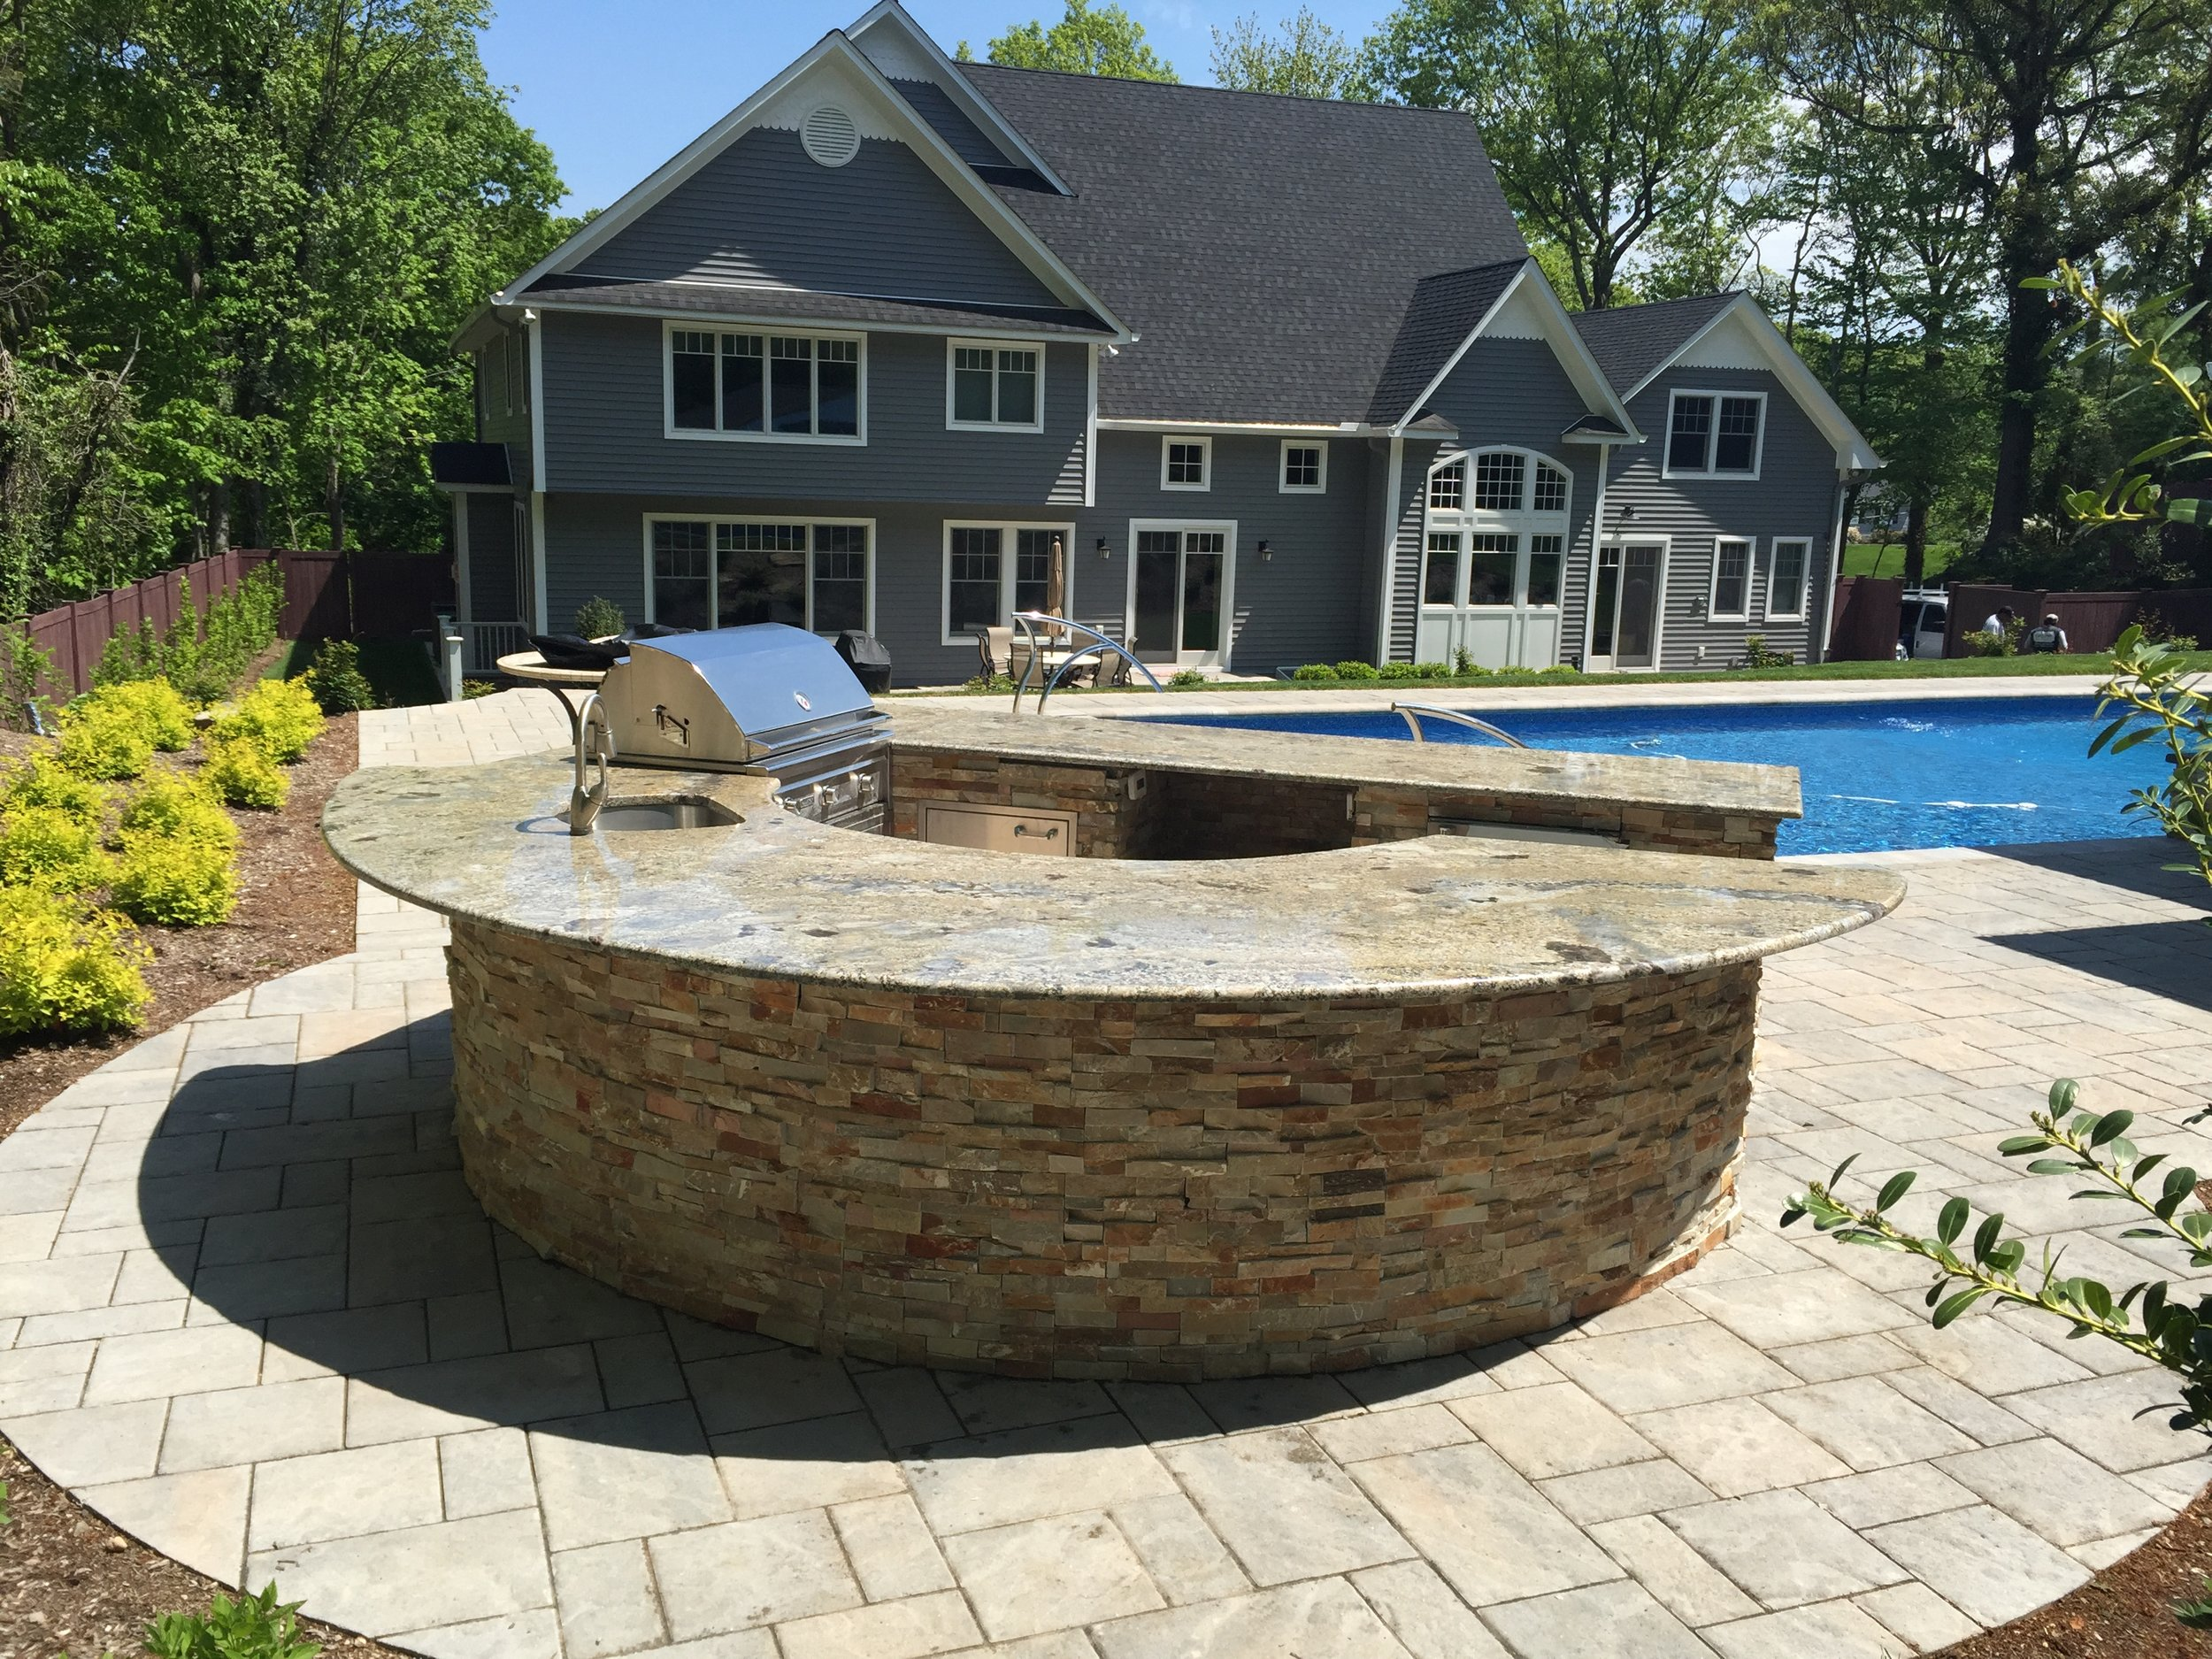 Professional outdoor kitchen landscapedesign company in Long Island, NY